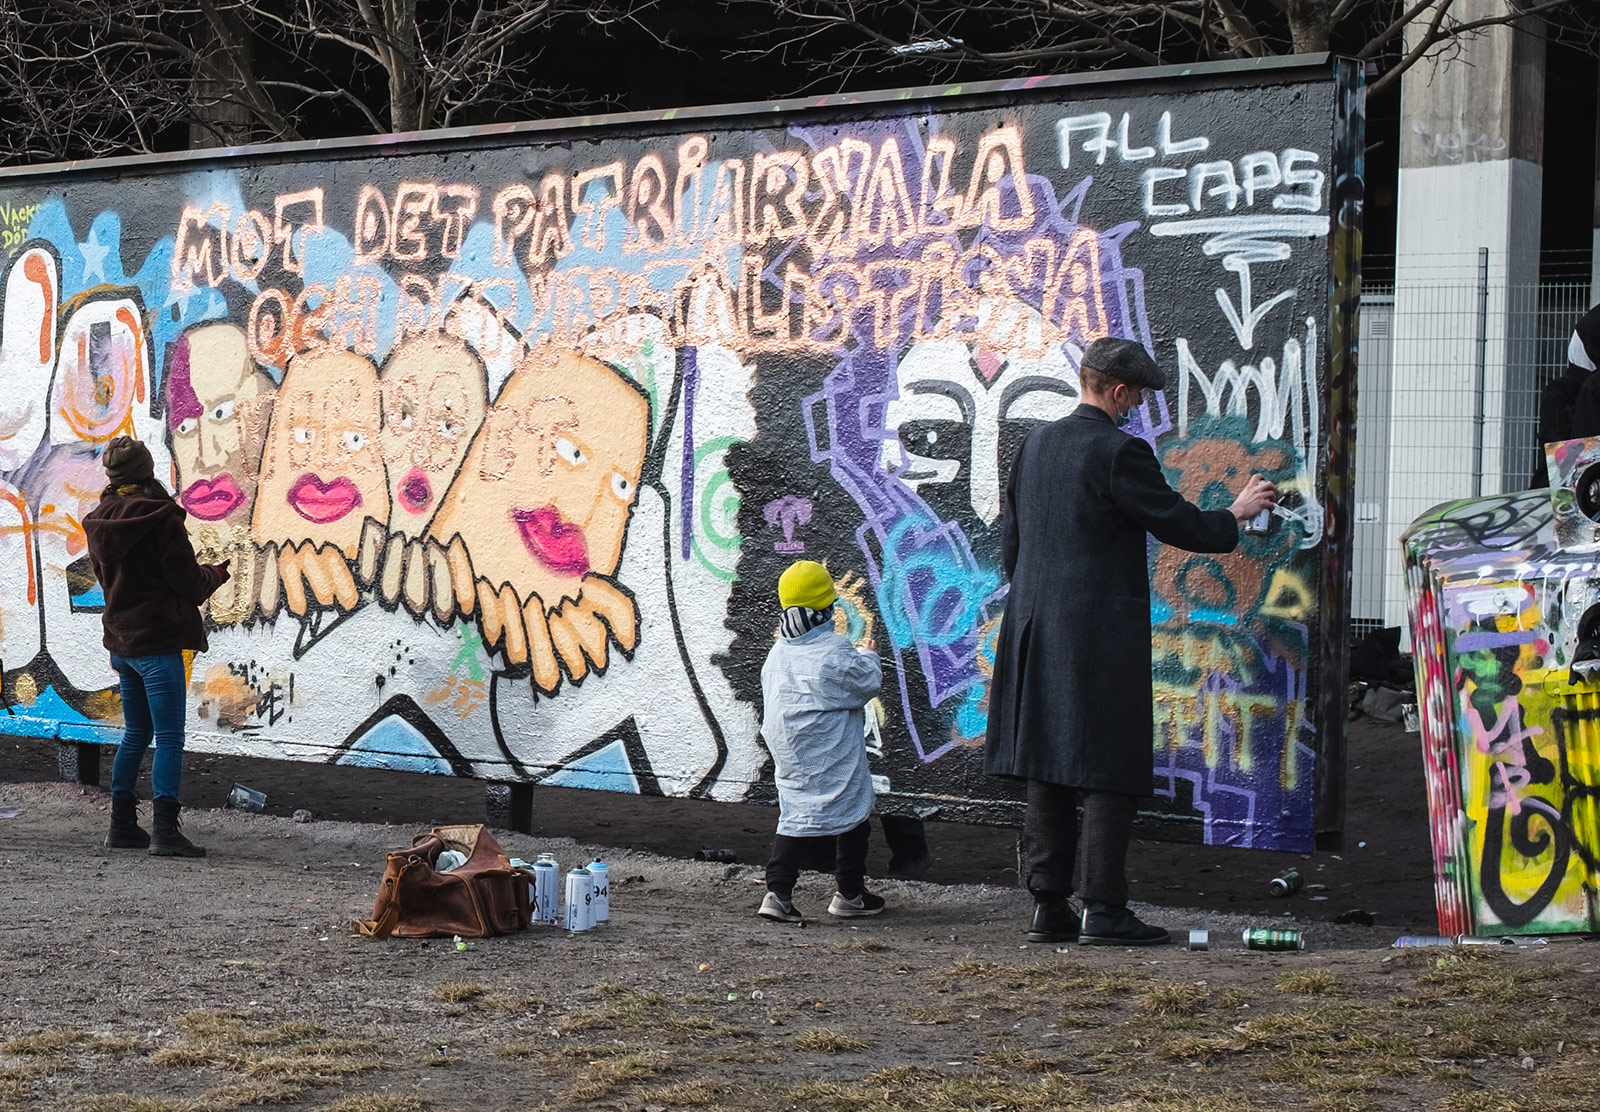 Kid spray painting with parent